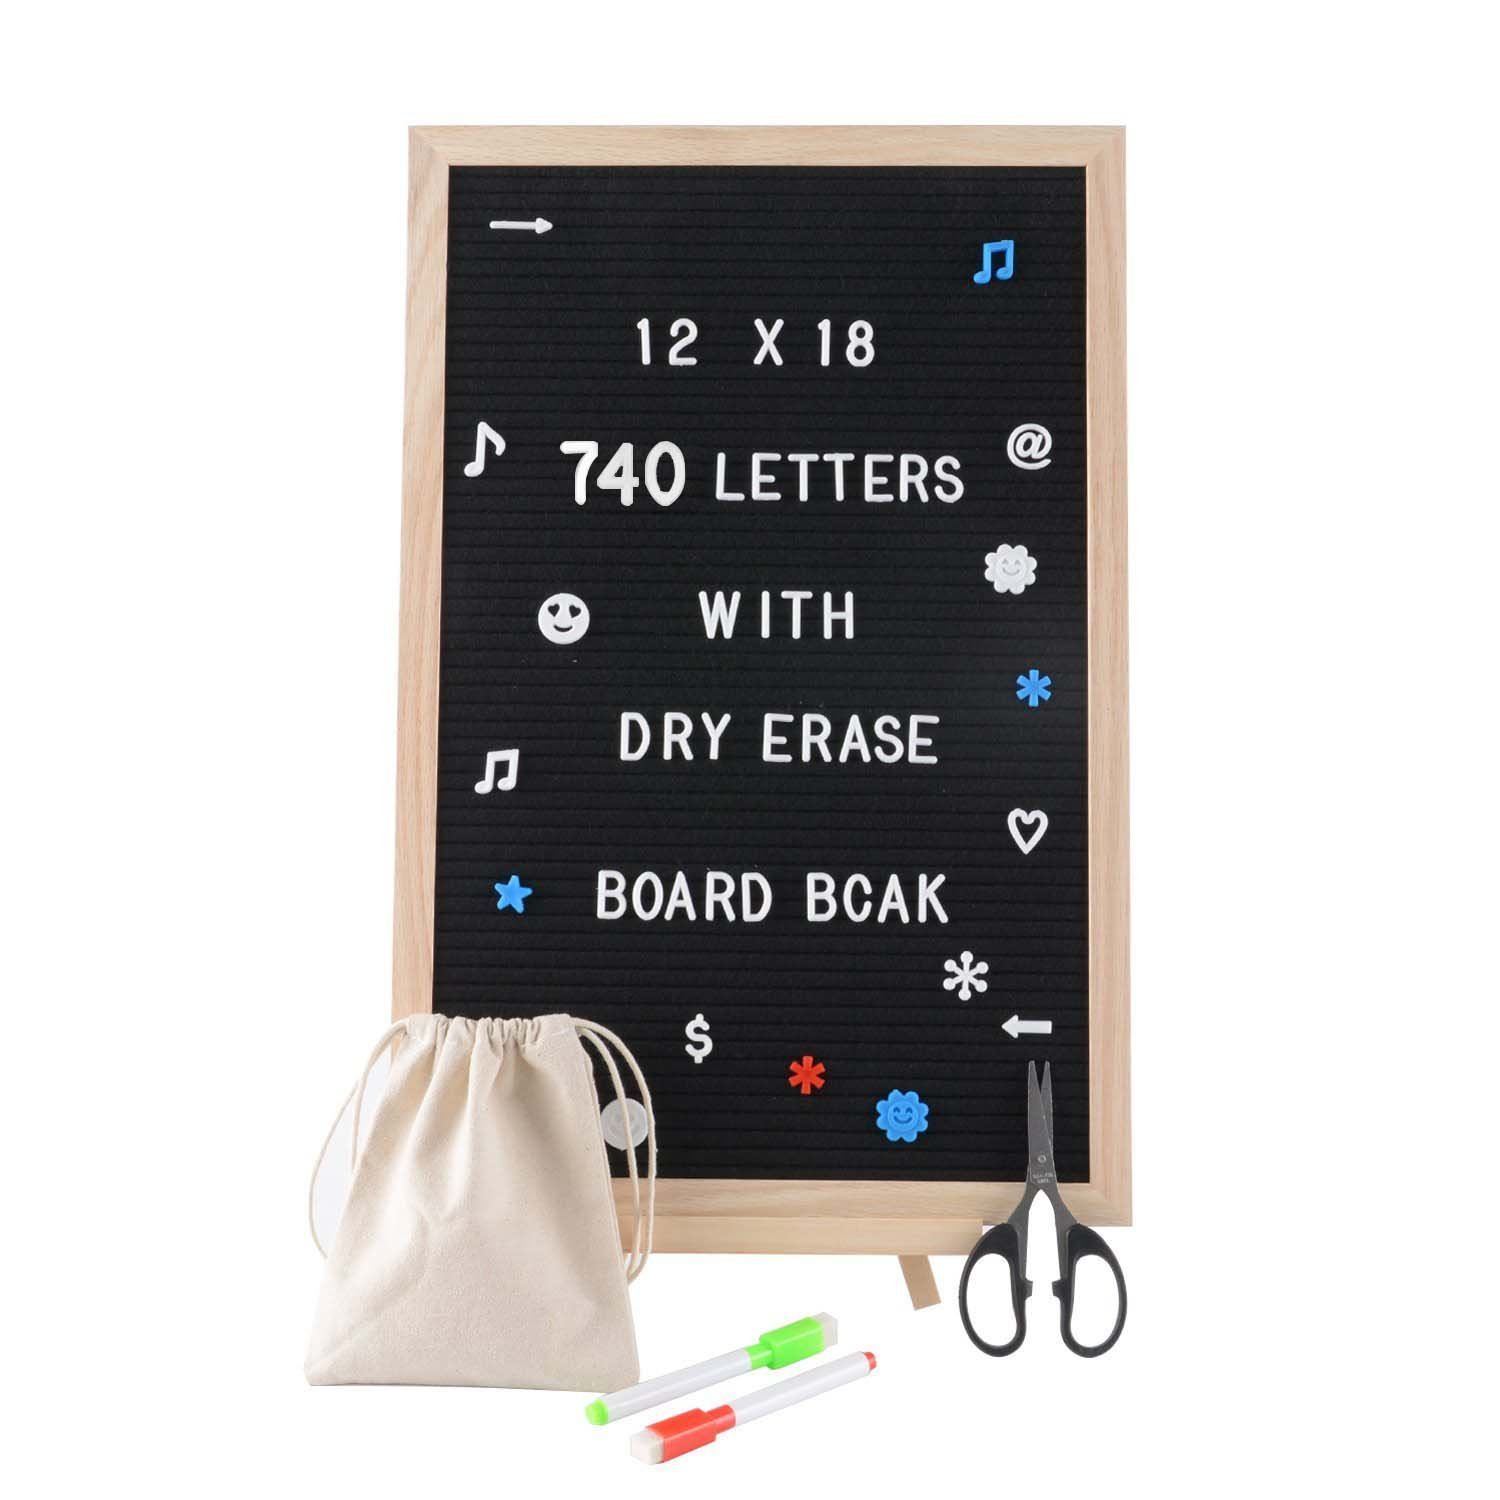 SPACECARE Black Felt Letter Board with Dry Erase Board Back, 720PCS Letters, Numbers & Symbols, 12x18 inches Wall Mount Changeable Message Board Sign, Word Board, Letterboard